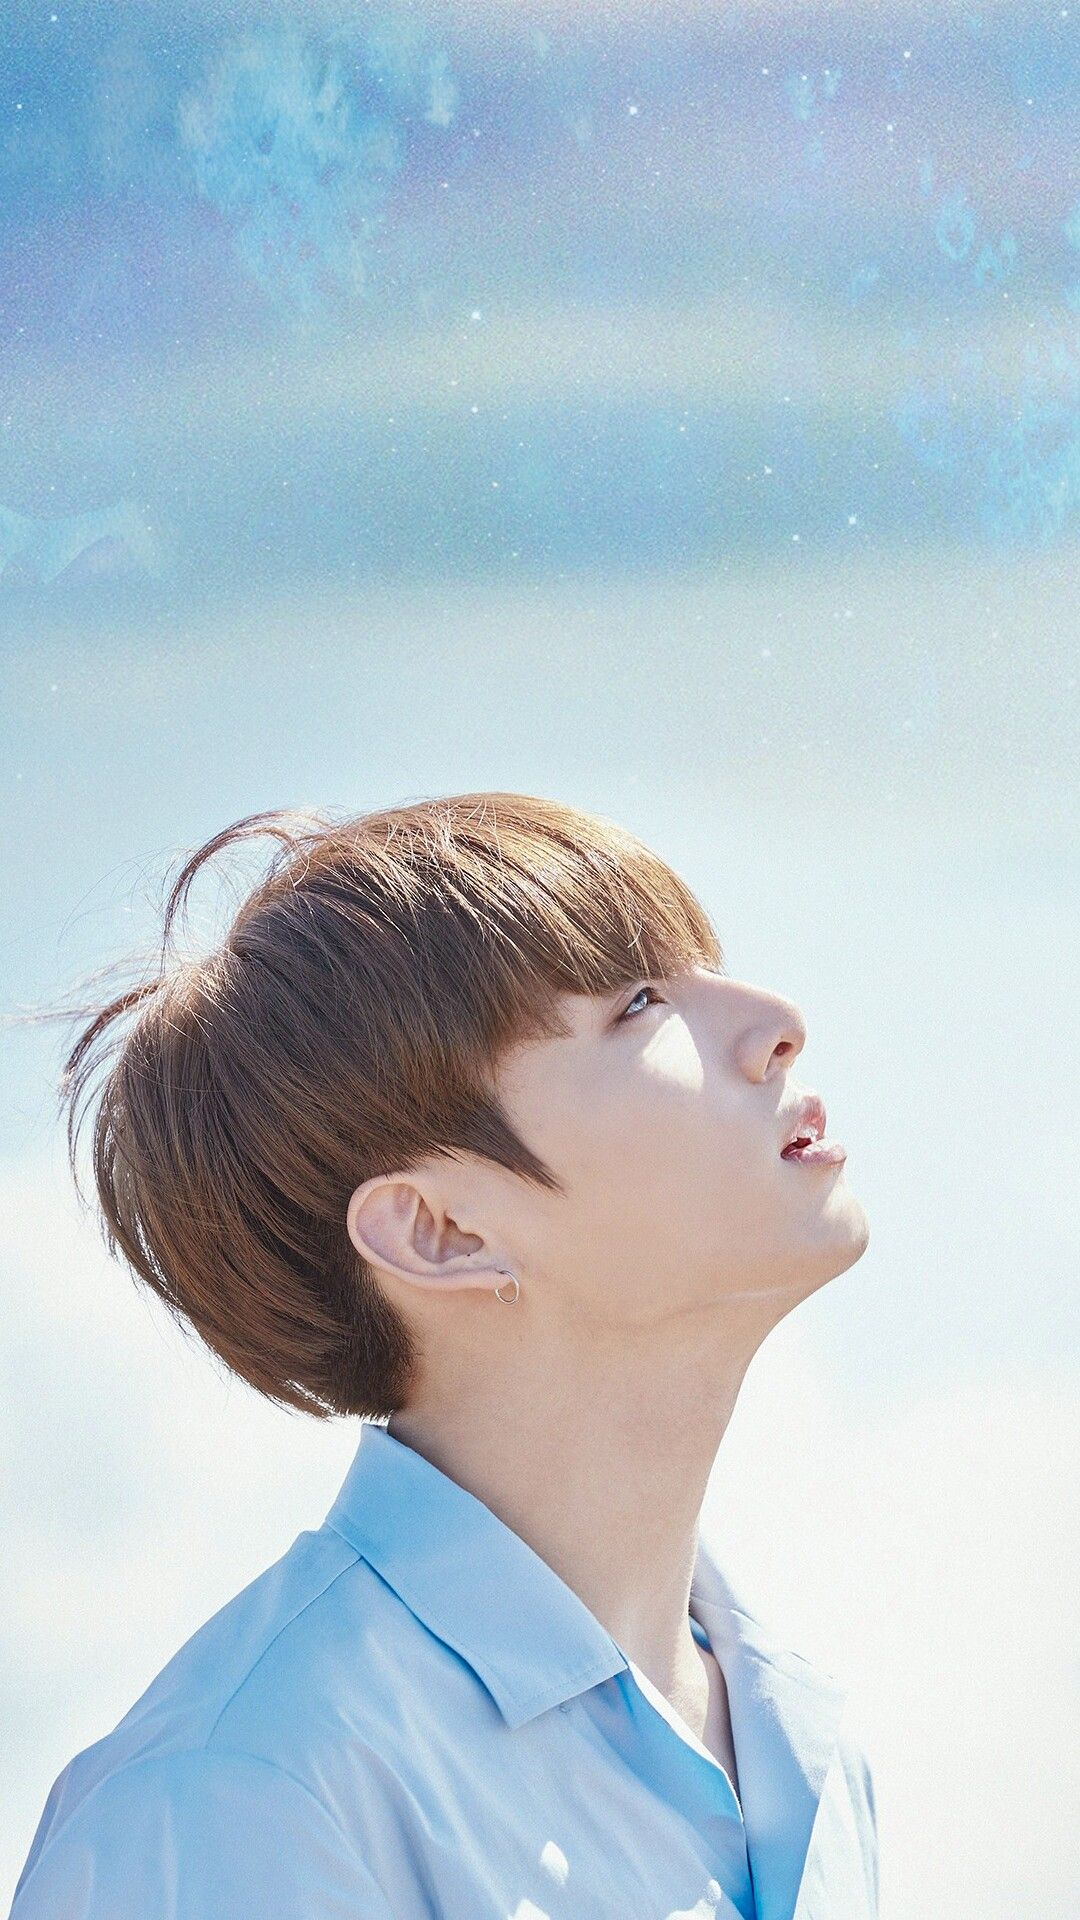 Jungkook Wallpaper Bts  Seasons Greetings  E  A